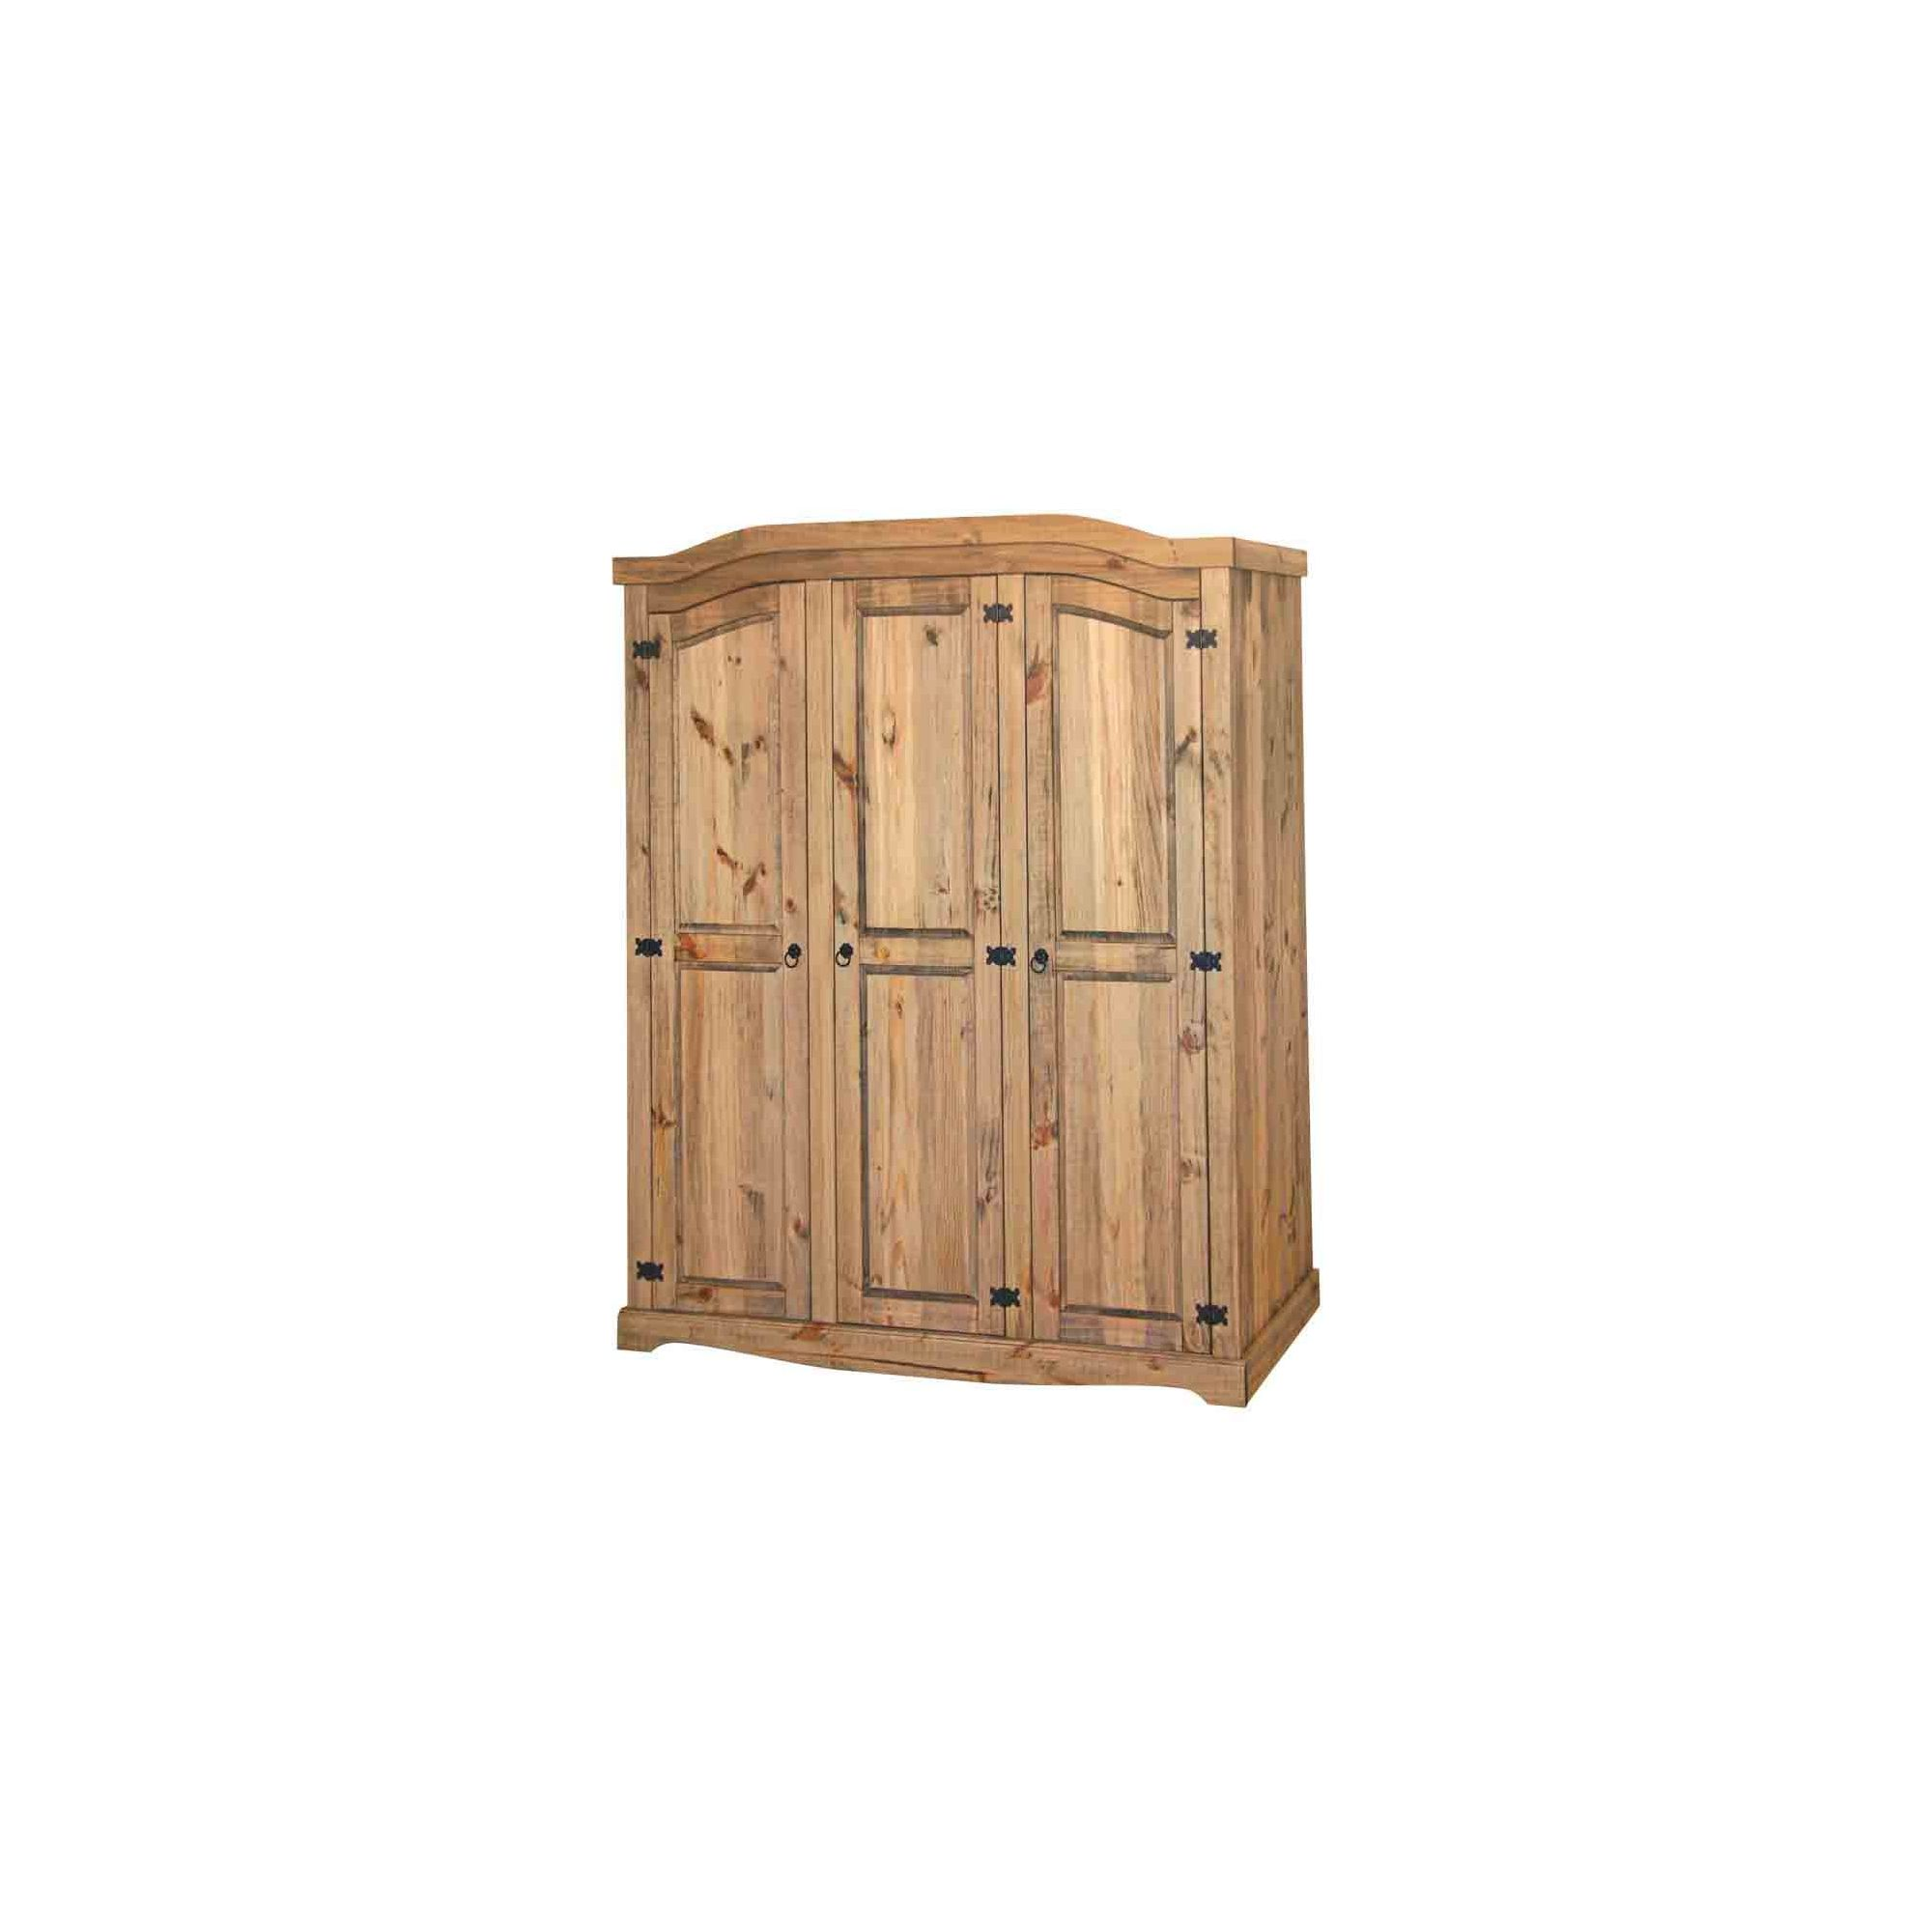 Home Essence Corona 3 Door Wardrobe in Solid Pine at Tesco Direct